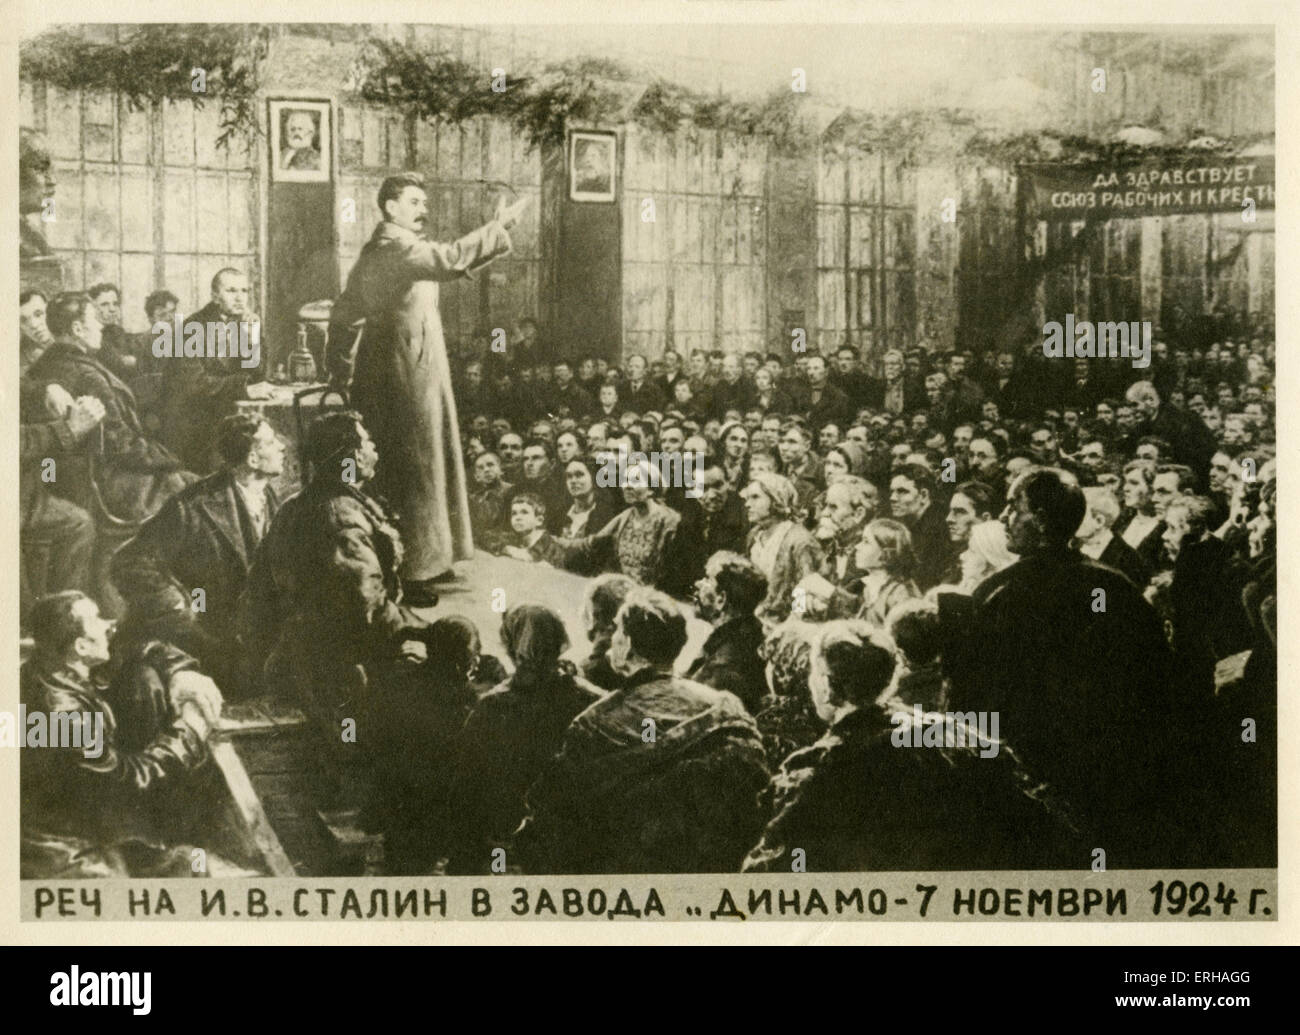 Joseph Stalin (1878-1953) addressing a meeting of the workers on the seventh anniversary of the October revolution, - Stock Image